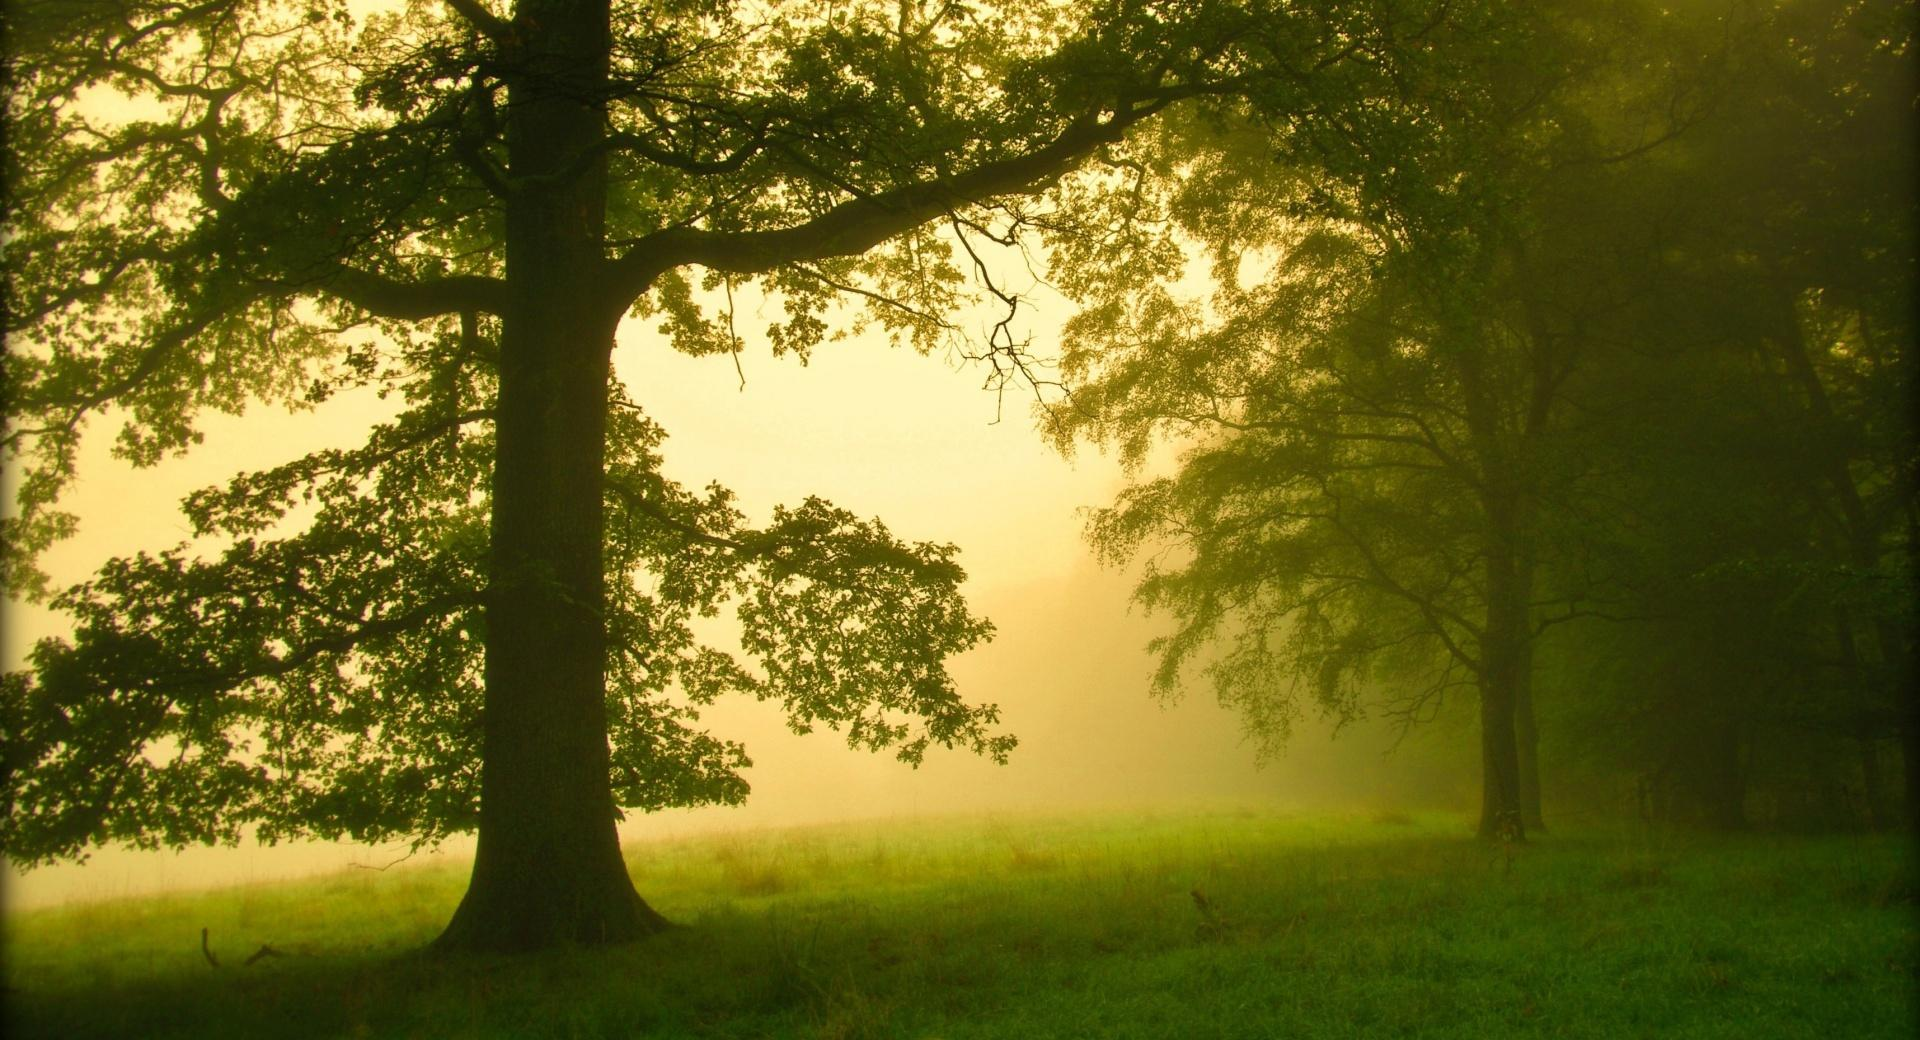 Morning Mist at 1152 x 864 size wallpapers HD quality